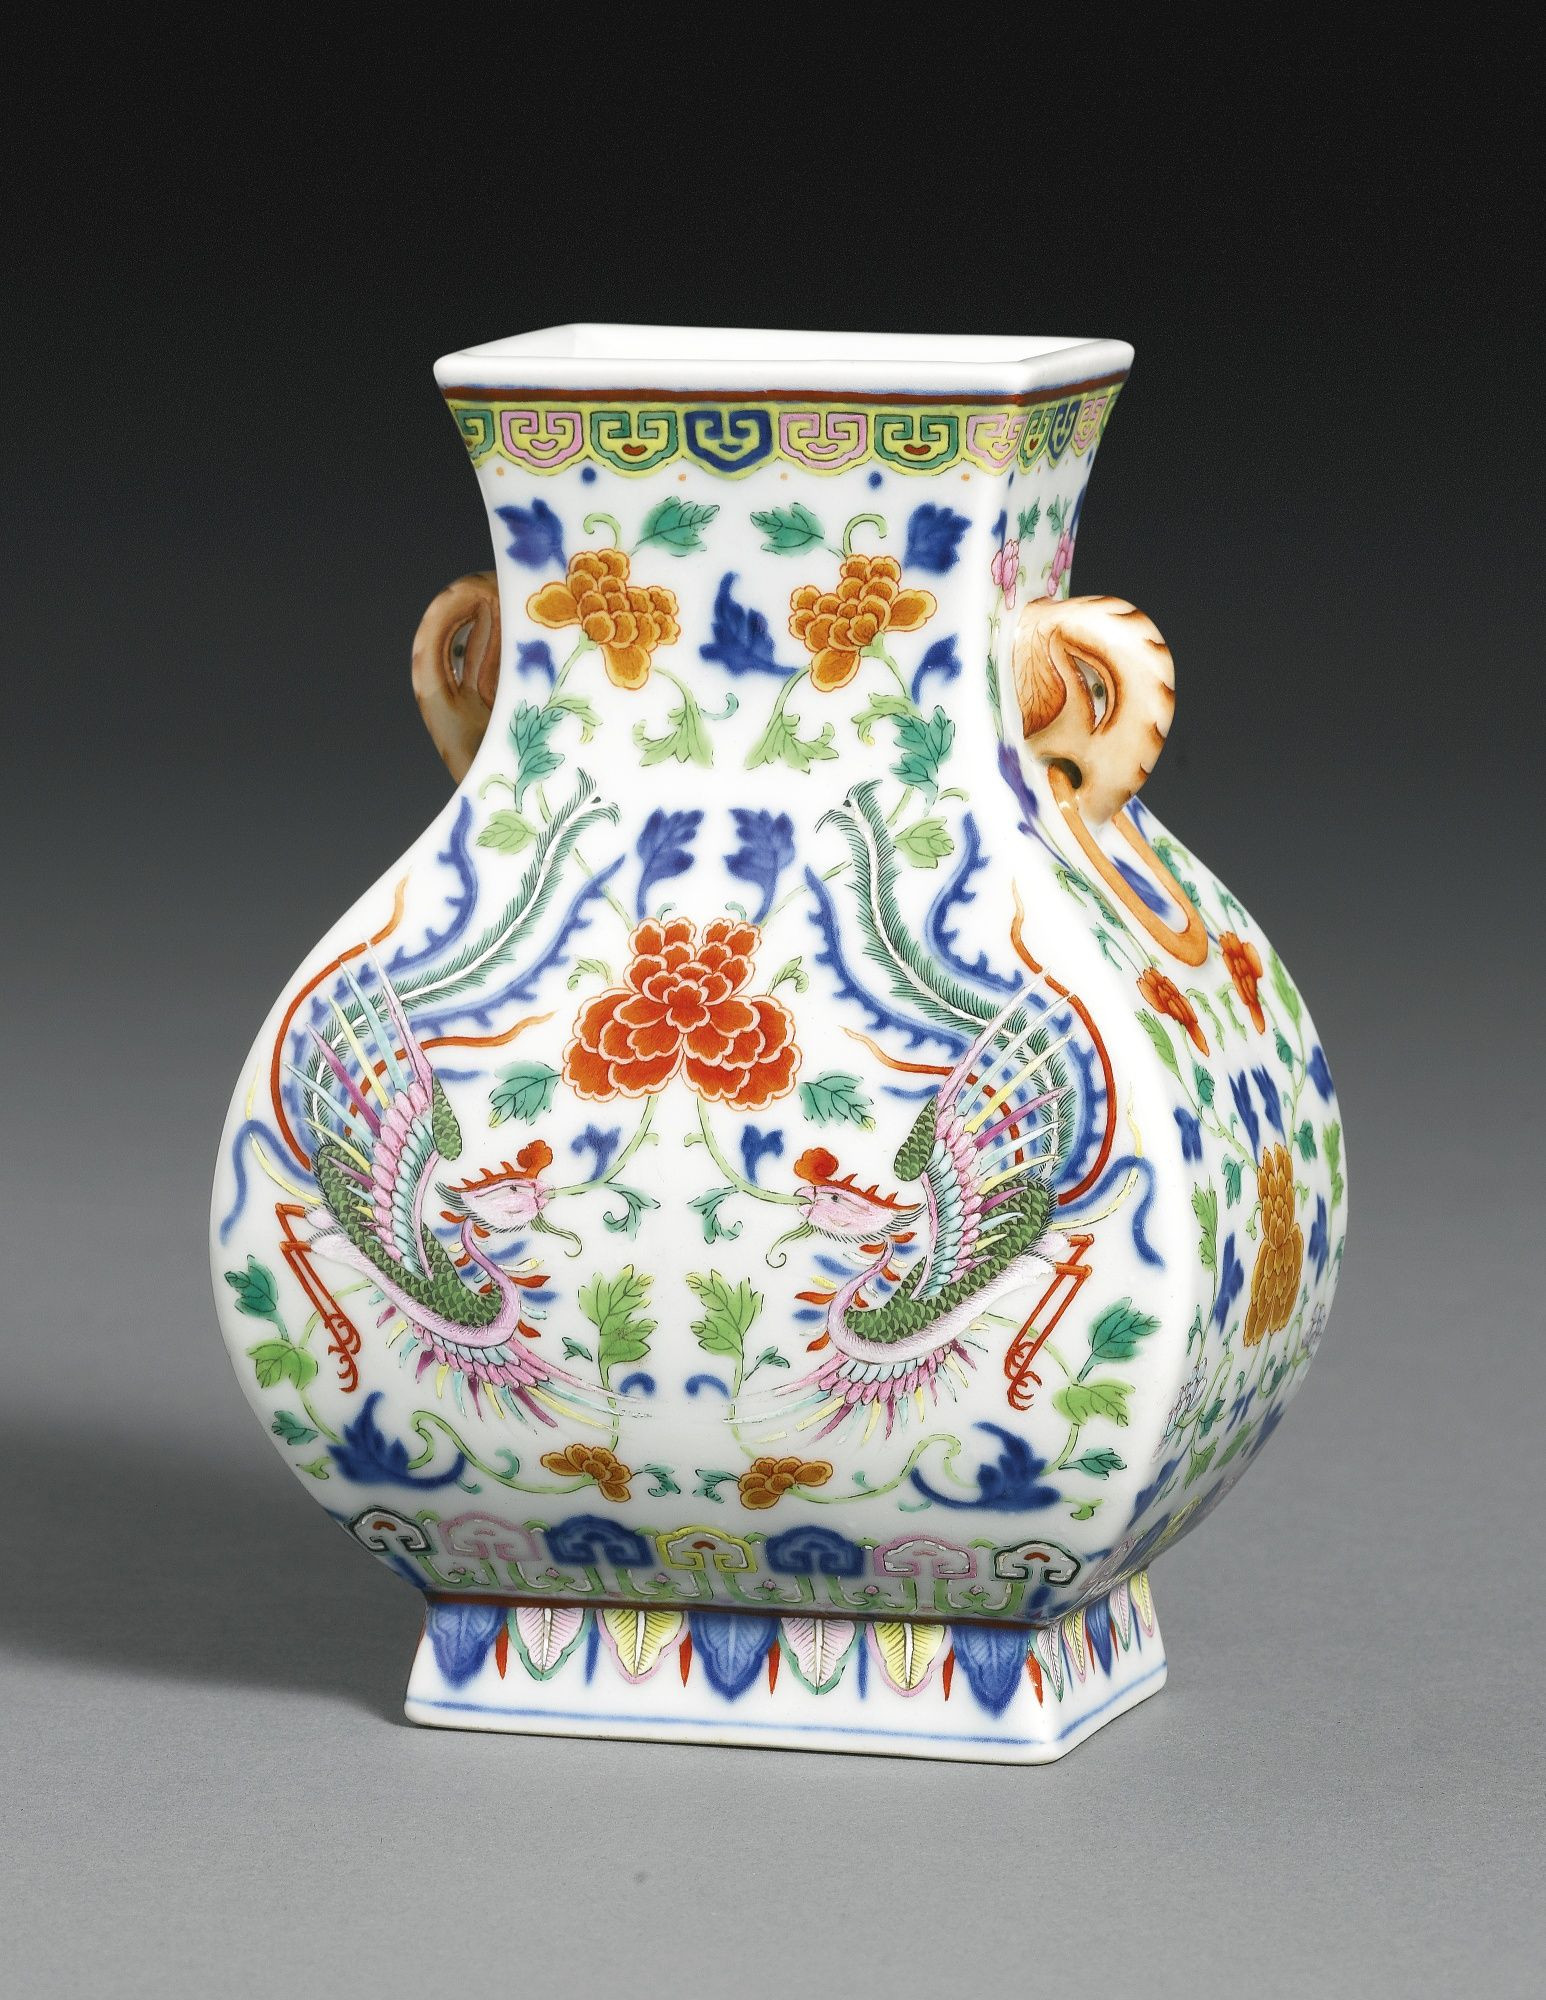 Fine China Vase Of A Fine and Rare Underglaze Blue Polychrome Enamel Phoenix Vase with A Fine and Rare Underglaze Blue Polychrome Enamel Phoenix Vase Fanghu Qianlong